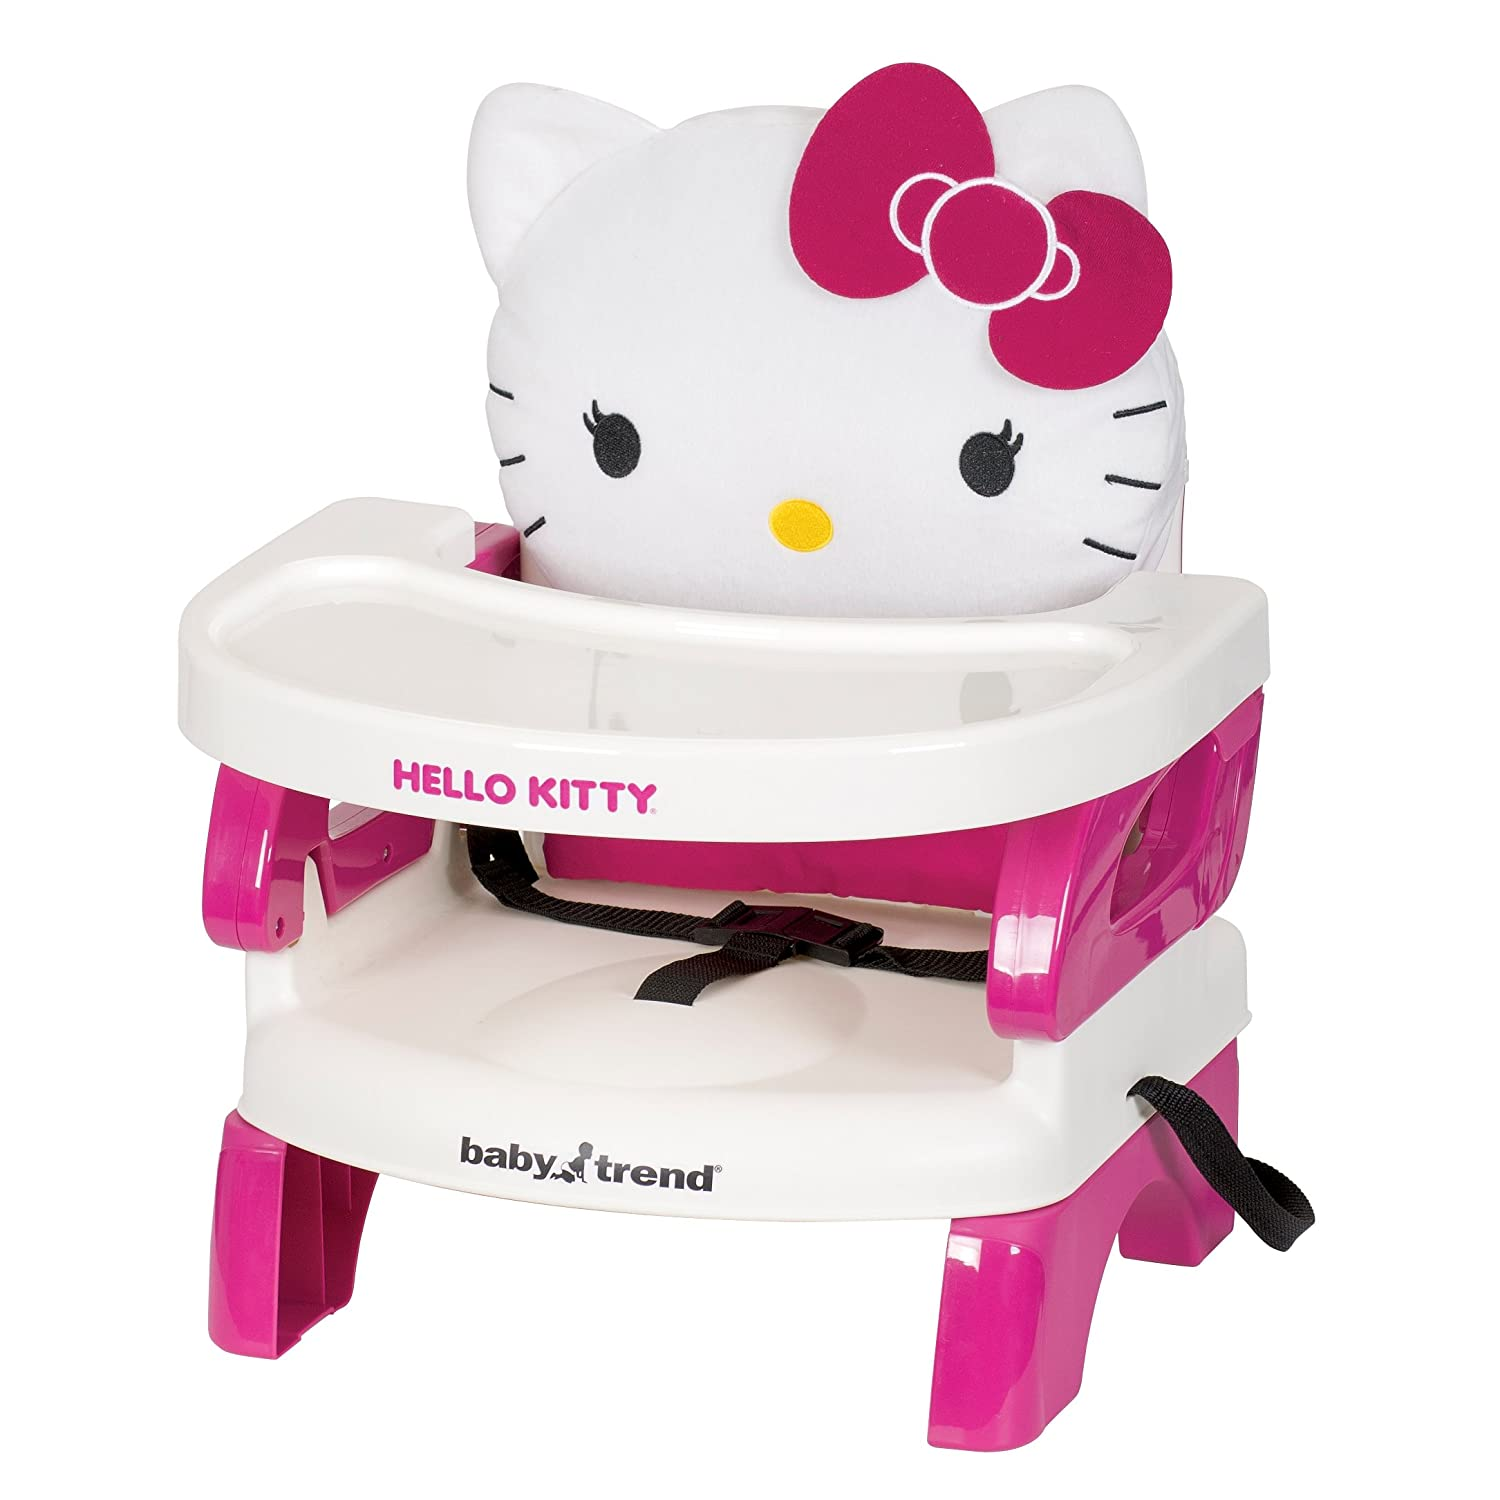 Hello kitty chair - Amazon Com Baby Trend Portable High Chair Easyseat Toddler Booster Hello Kitty Polka Dot Baby